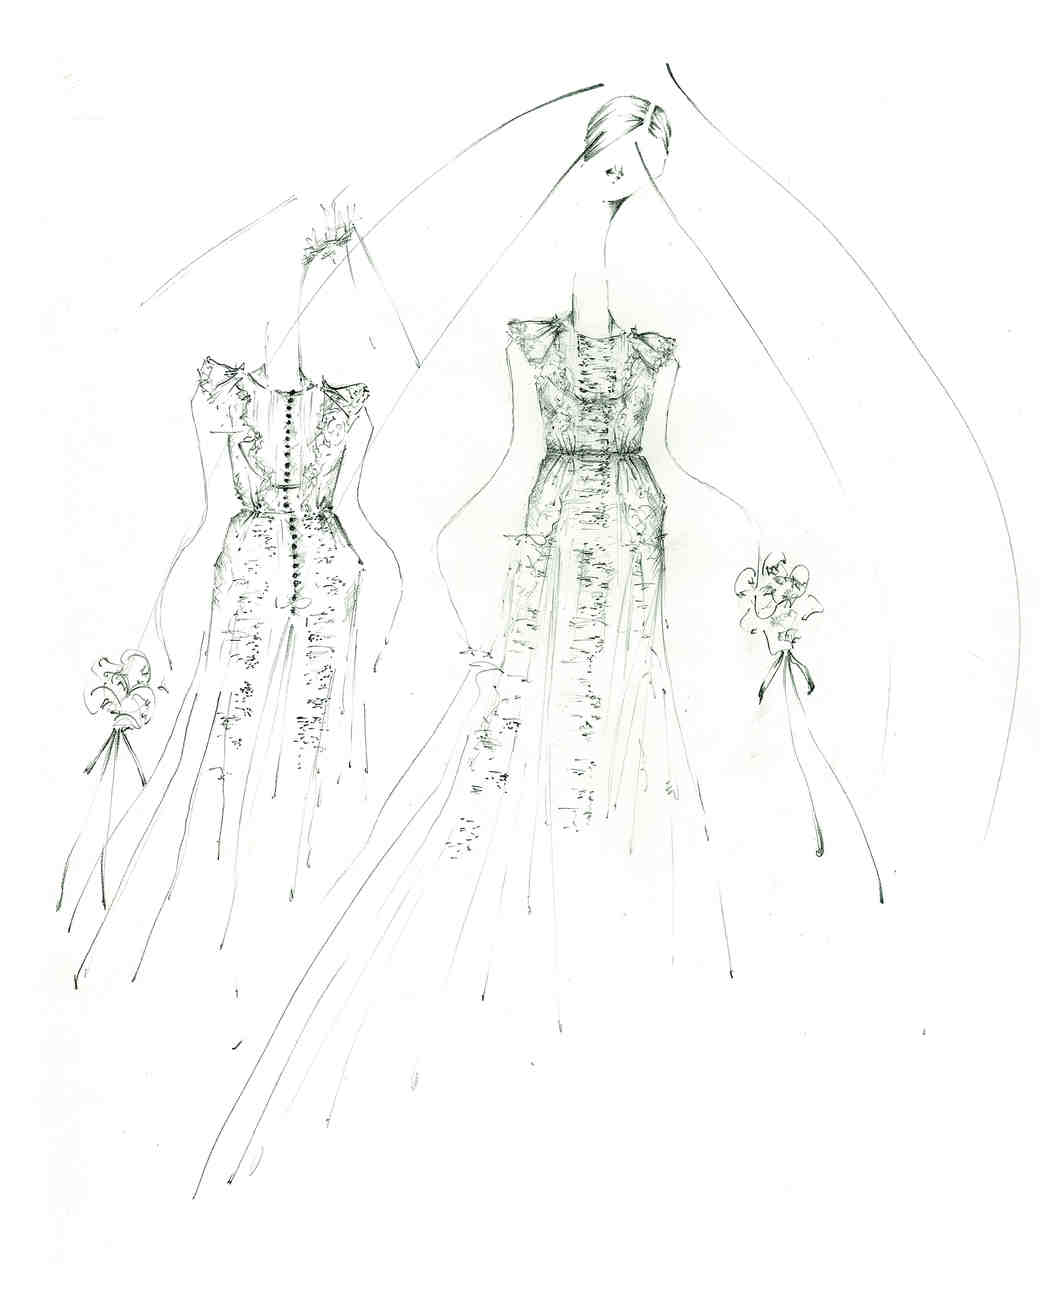 sofia-vergara-dress-sketches-celestina-agostino-0915.jpg